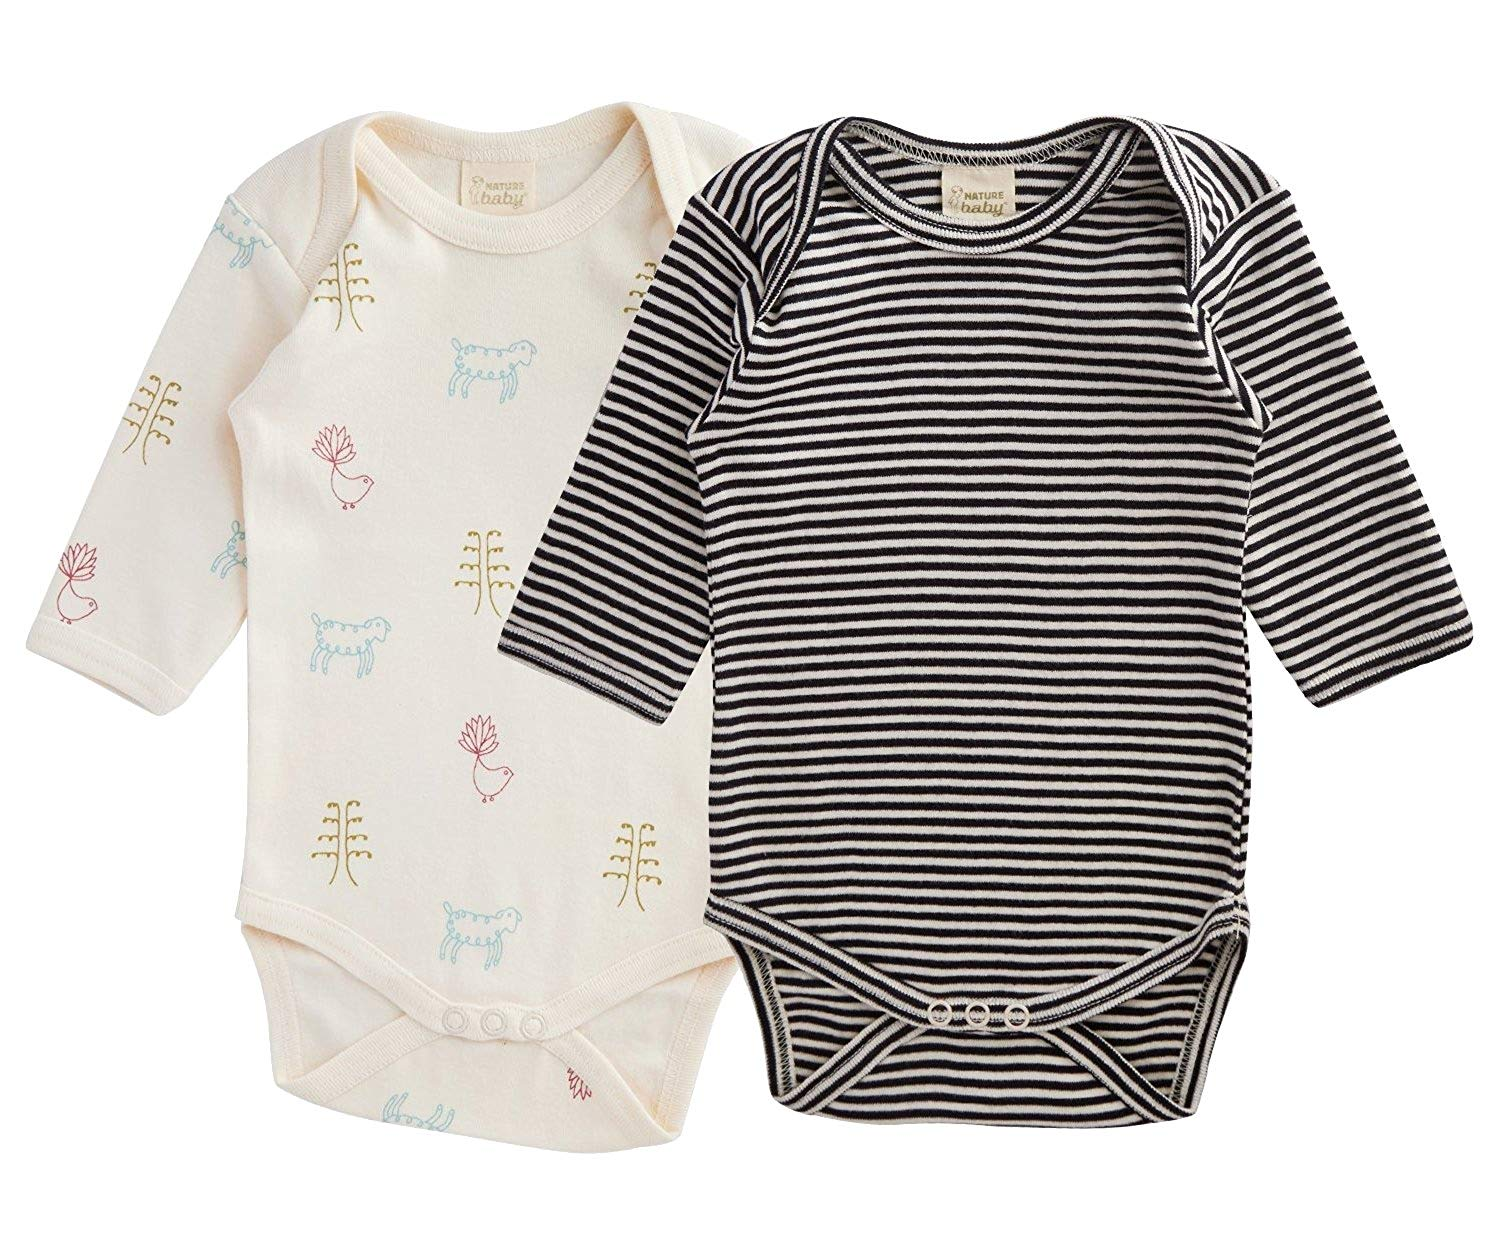 Nature Baby Organic Cotton Long-Sleeved Bodysuit 2-Pack